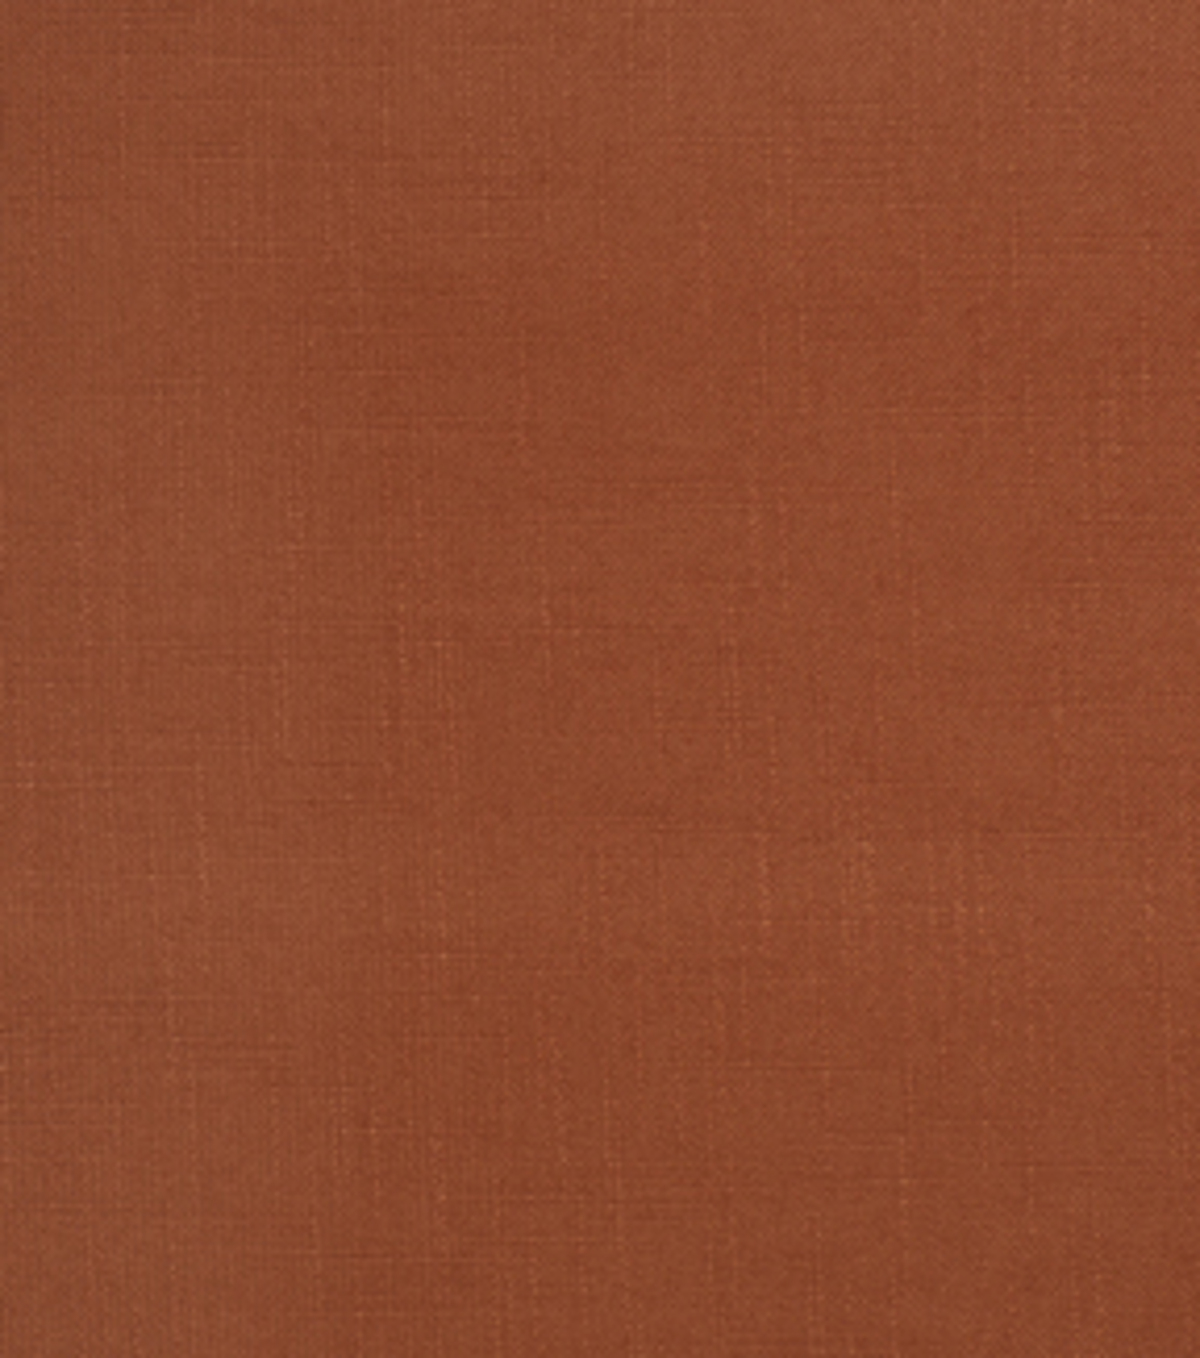 Home Decor 8\u0022x8\u0022 Fabric Swatch-Signature Series Gallantry Spice